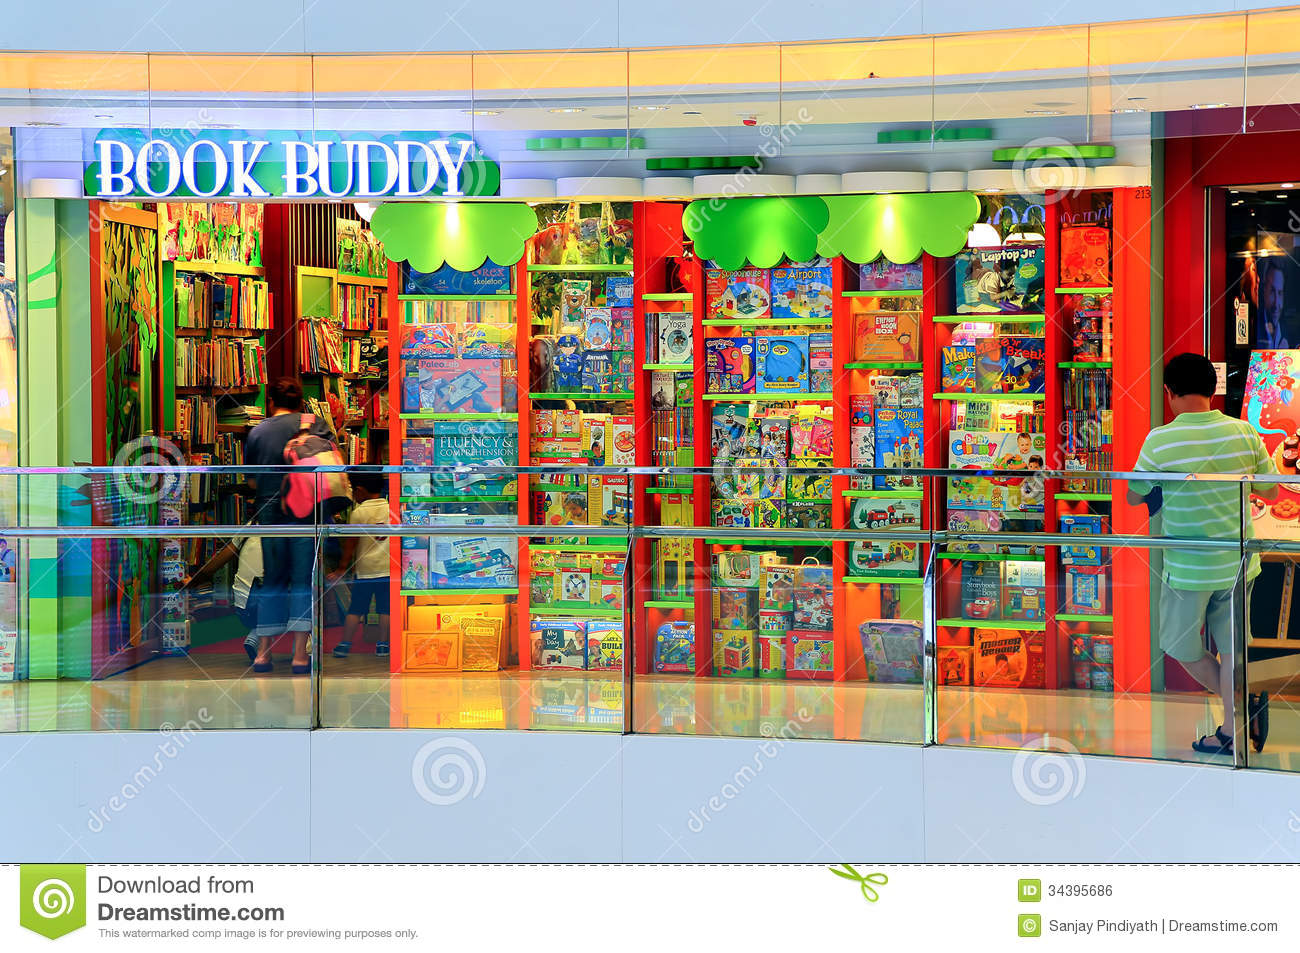 Awesome Book Buddy Is A Children Book Store With Jungle Alike Decor. Location :  Windsor House Shopping Mall, Hong Kong